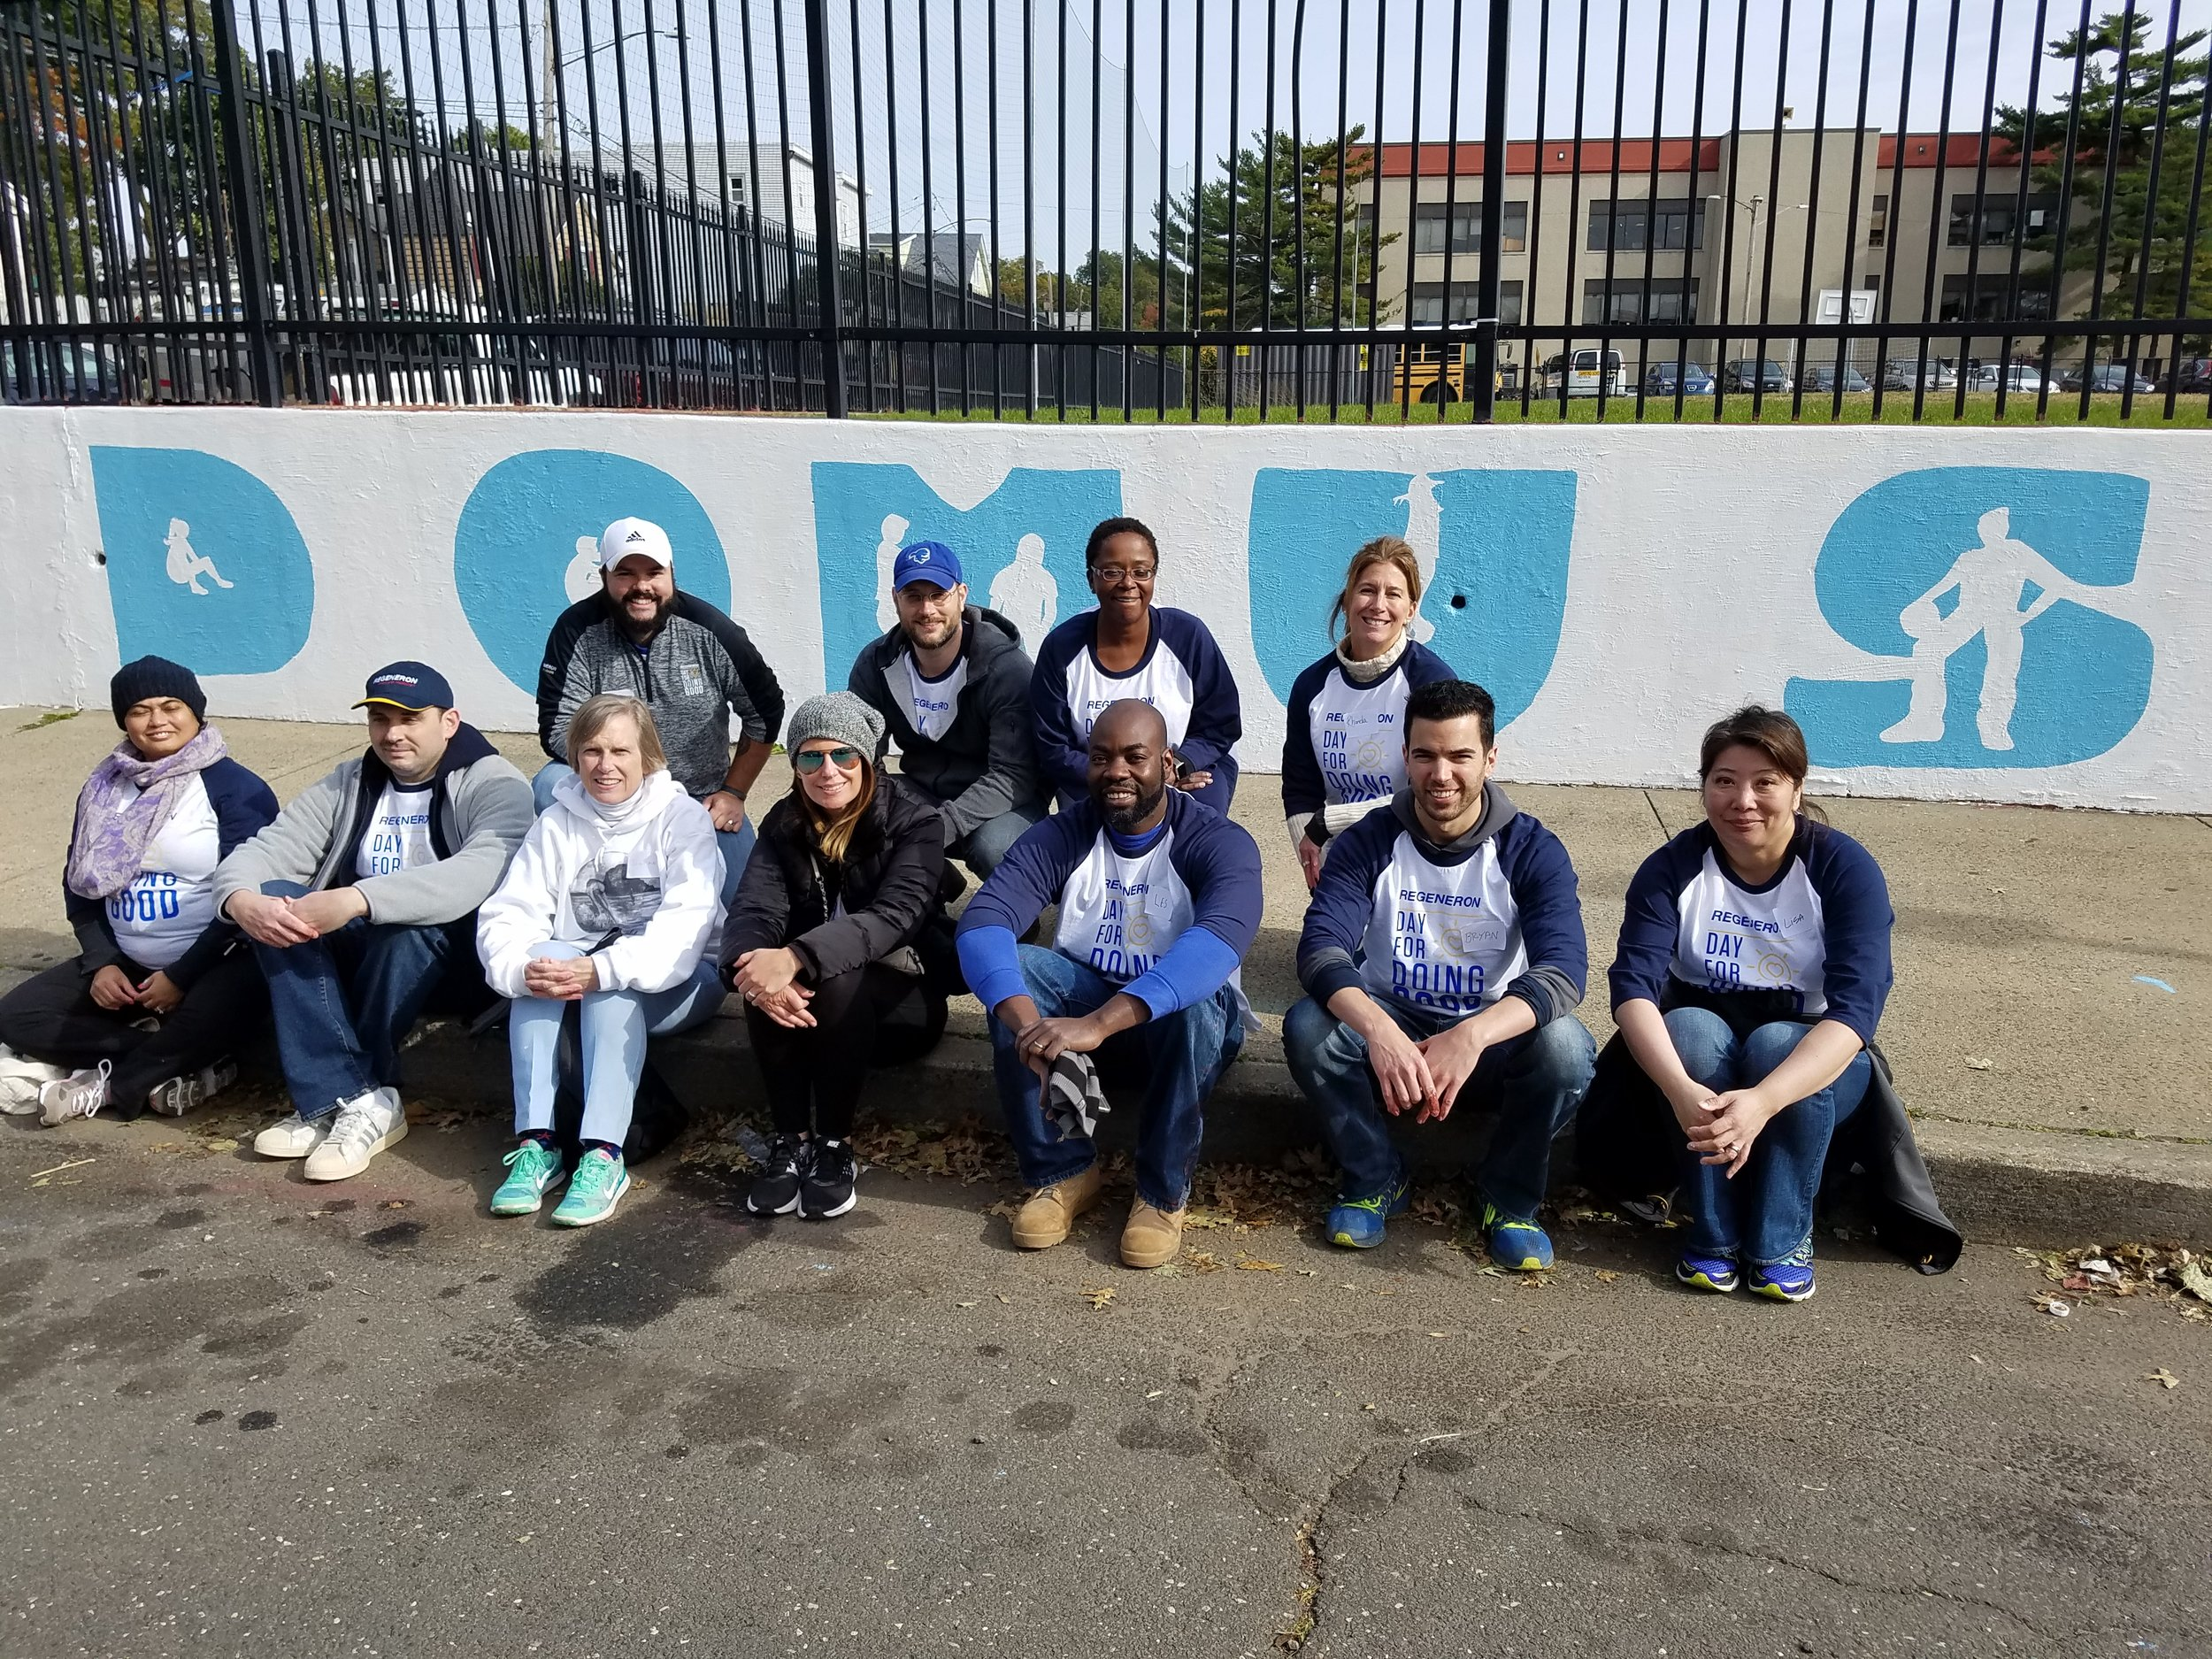 Talented Regeneron team posing for a picture after painting the new Domus logo.